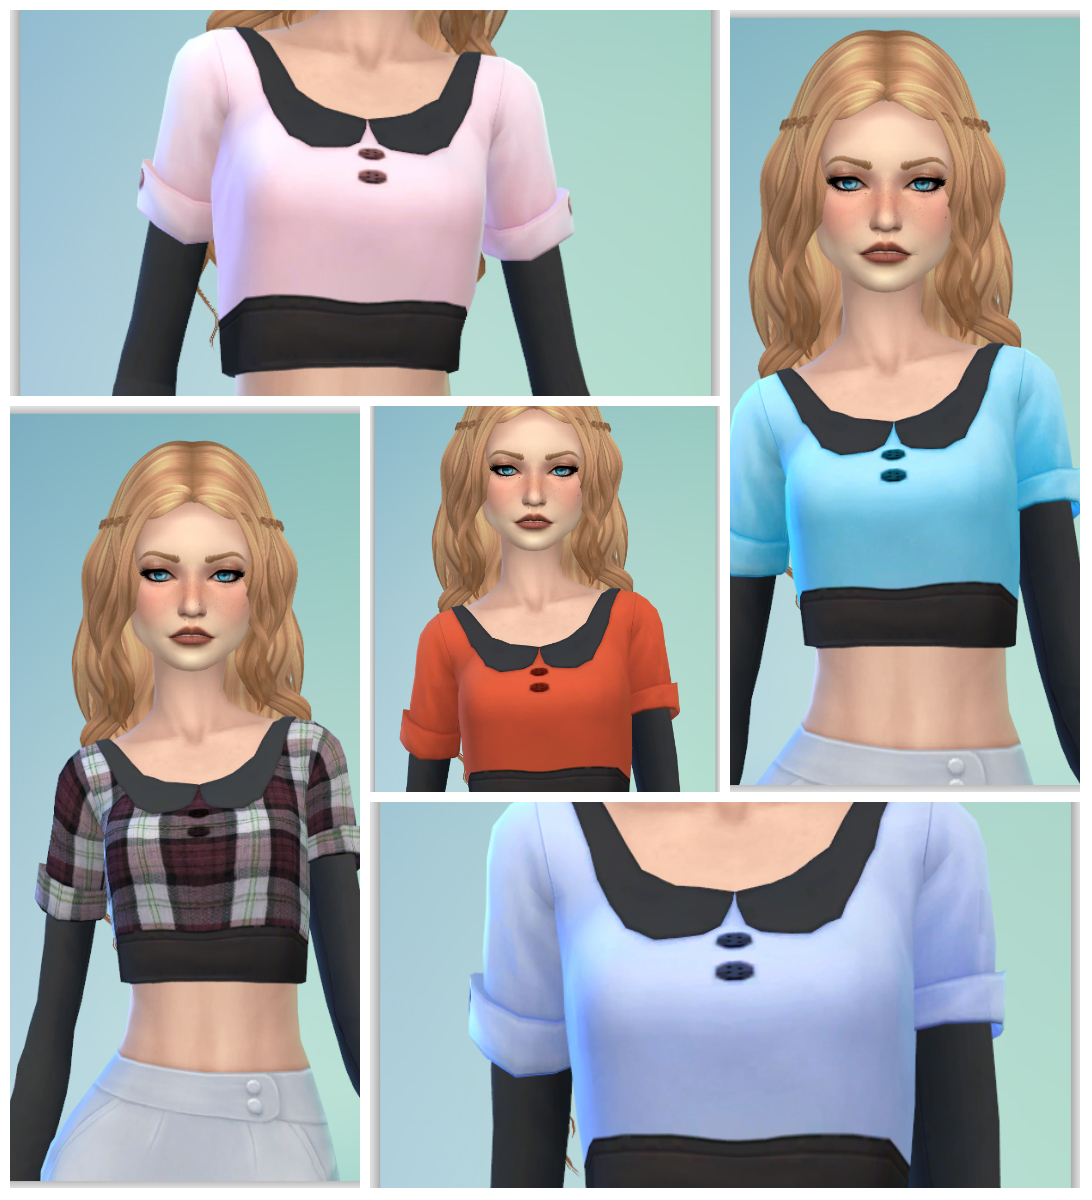 Cropped Collar Tops for Females by Annabellee25